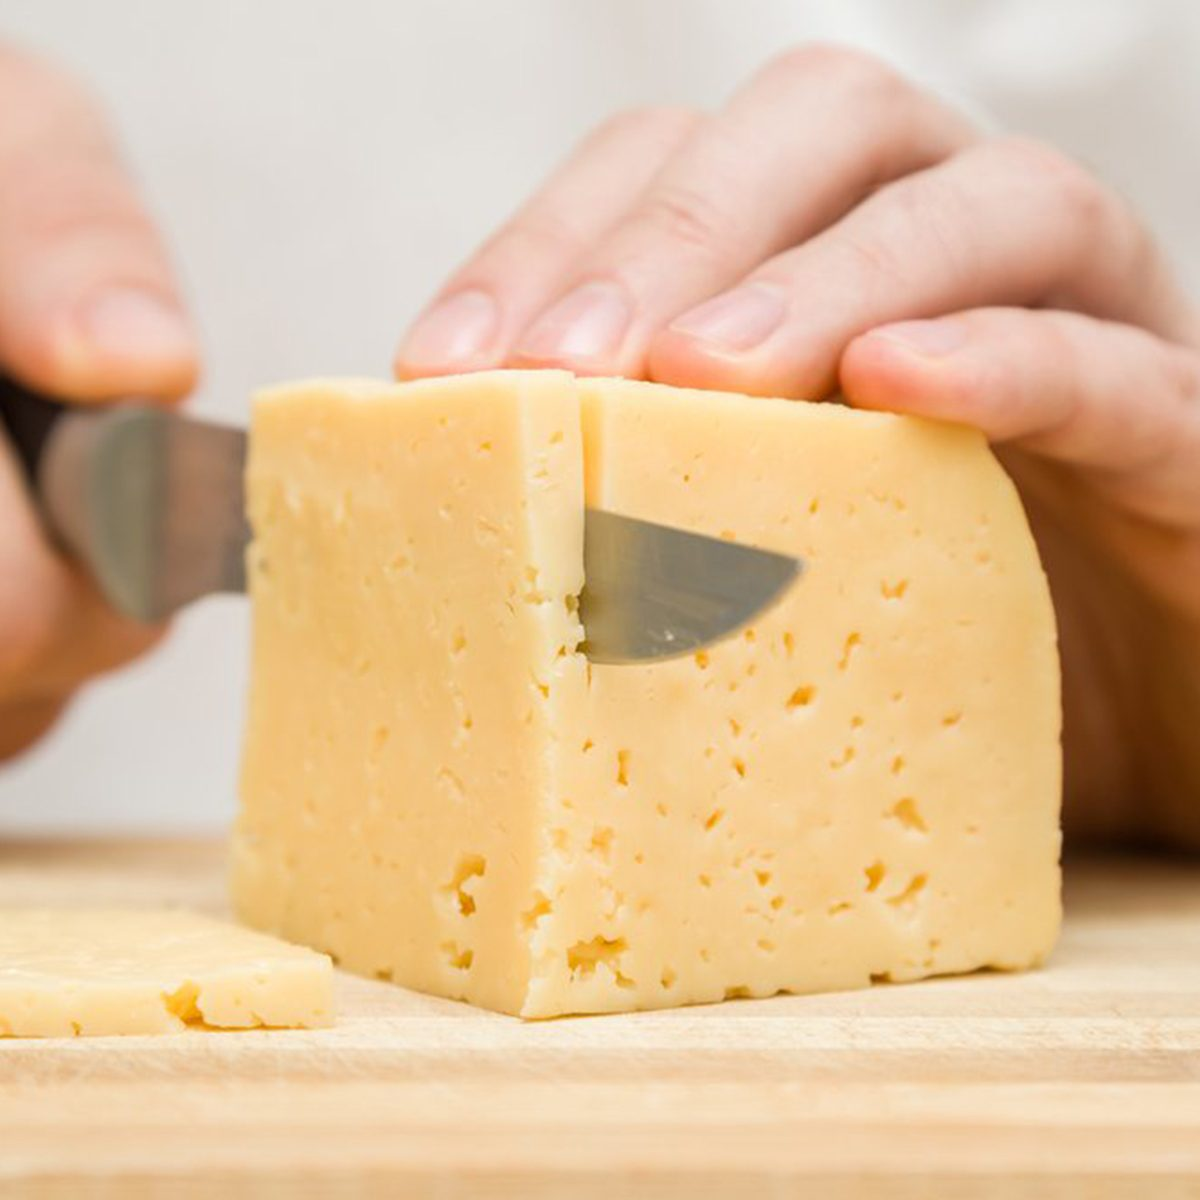 Chef cutting block of cheese